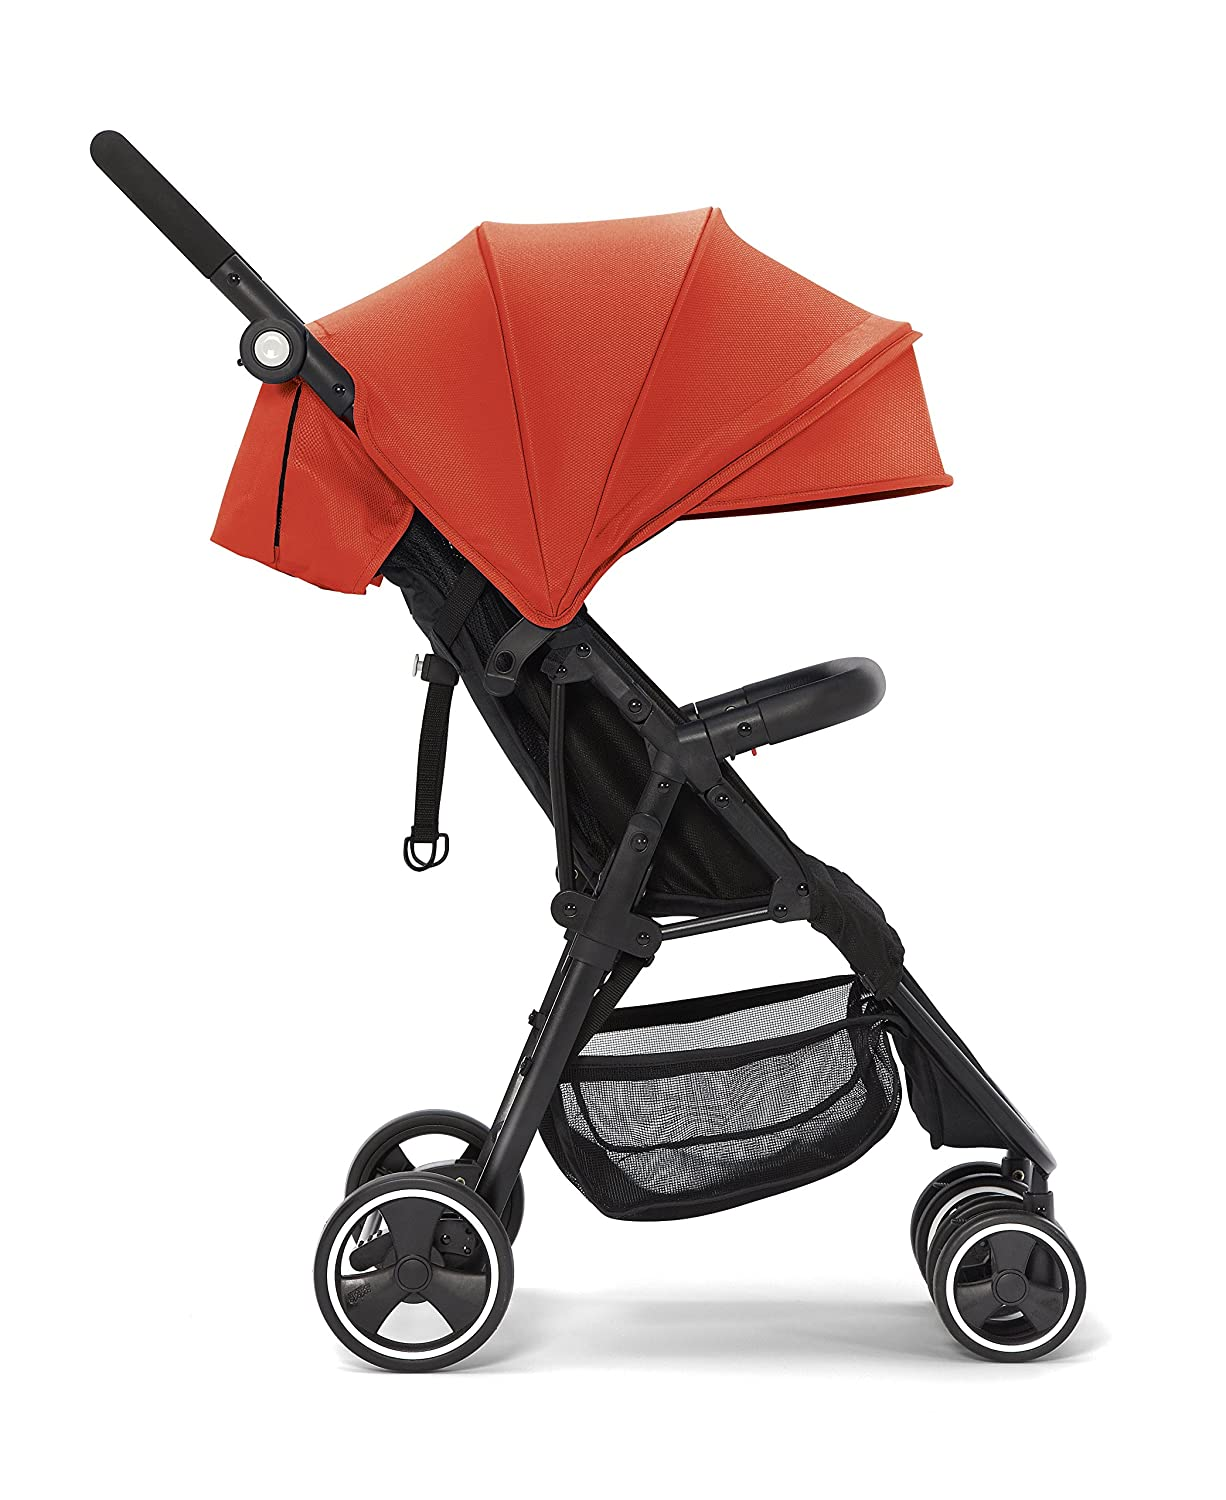 b056d1367b5 Mamas   Papas Acro Lightweight Compact Pushchair Buggy with Lightweight  4.9Kg Frame